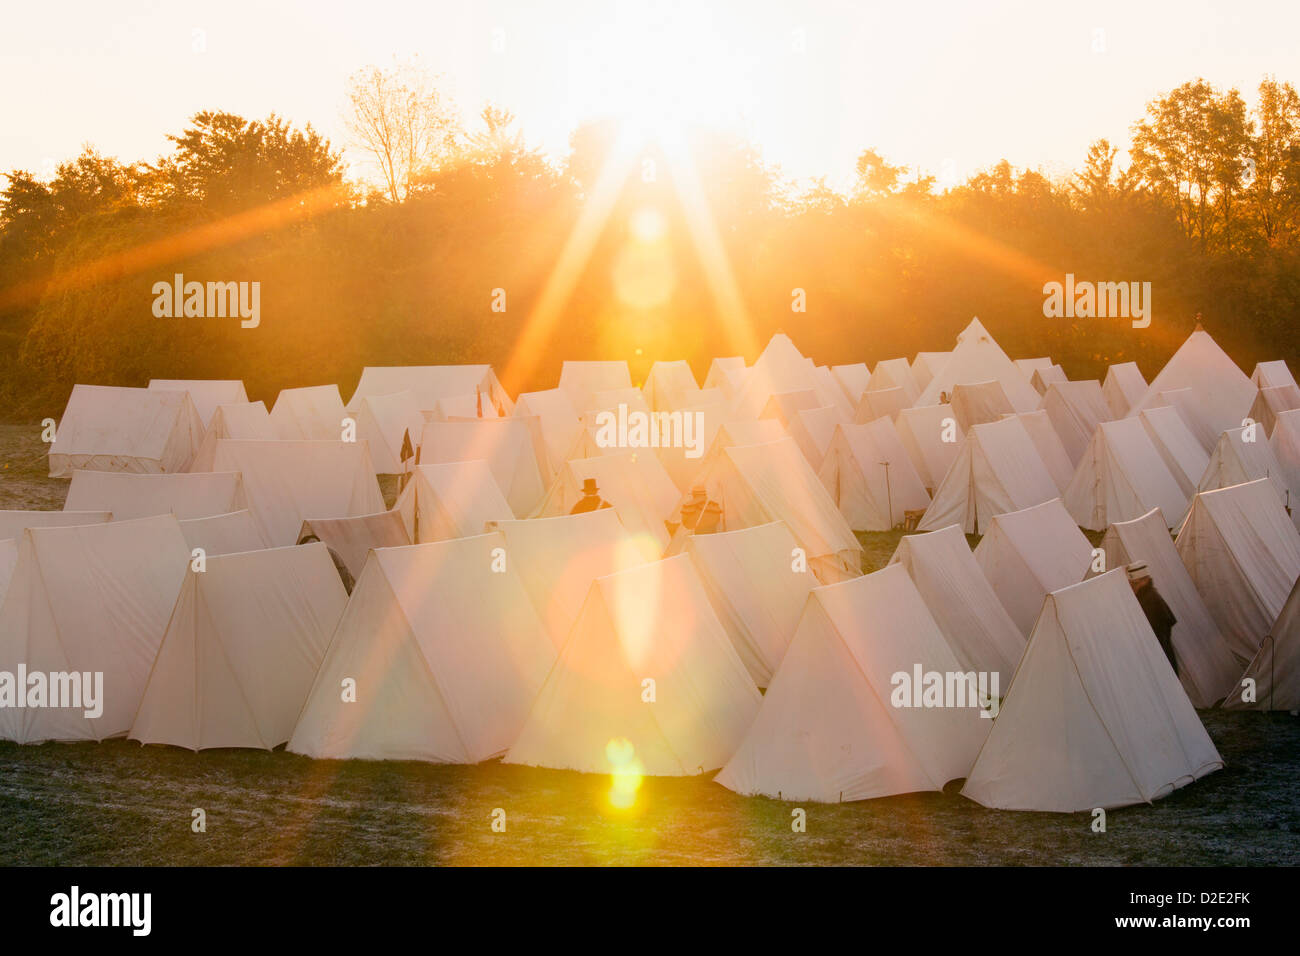 Canada,Ontario,Niagara-on-the-Lake, Fort George National Historical Monuments, rows of tents at War of 1812 re-enactment - Stock Image